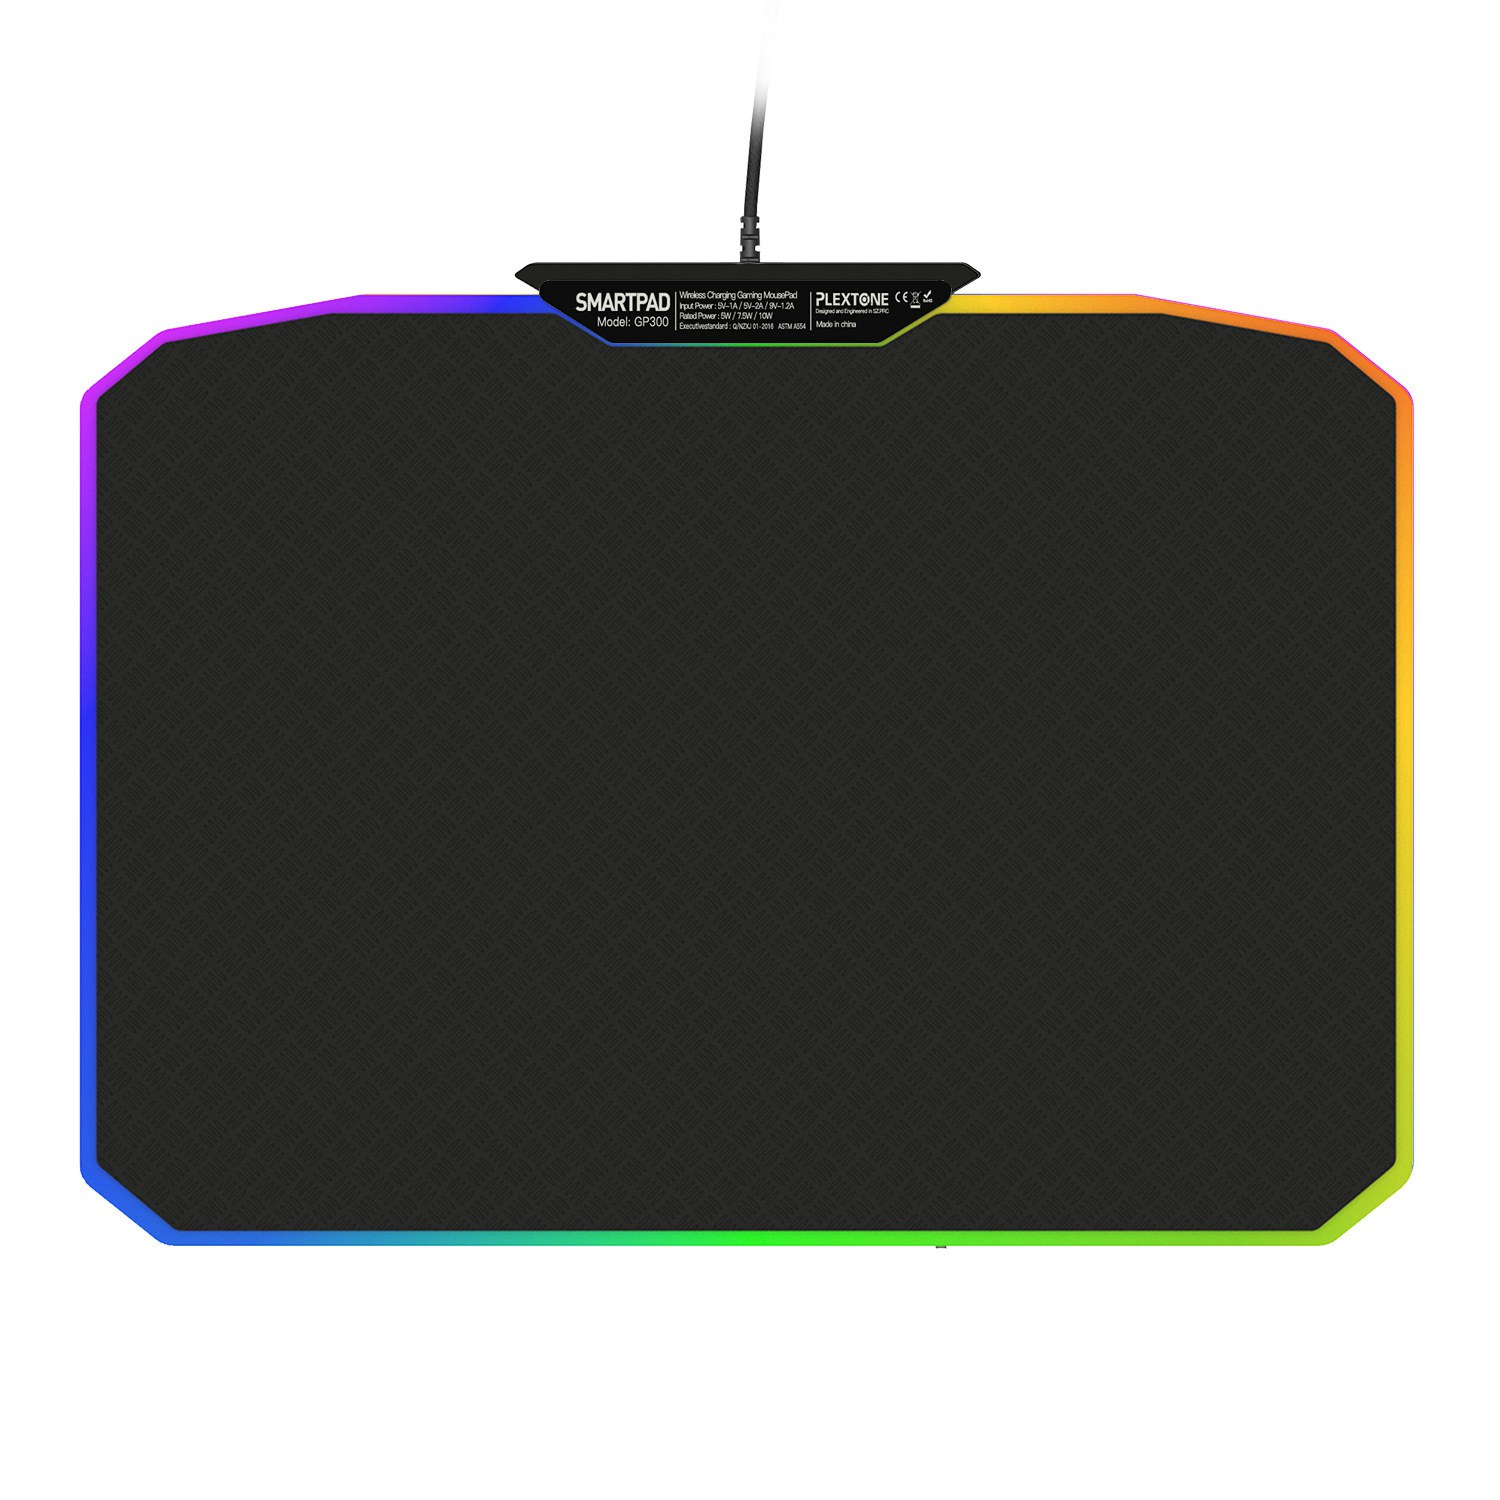 Plextone Gp300 Wireless Fast Charging Mouse Pad Mat 11 Kinds Of Colorful  Rgb Gaming Mouse Pad For Computer